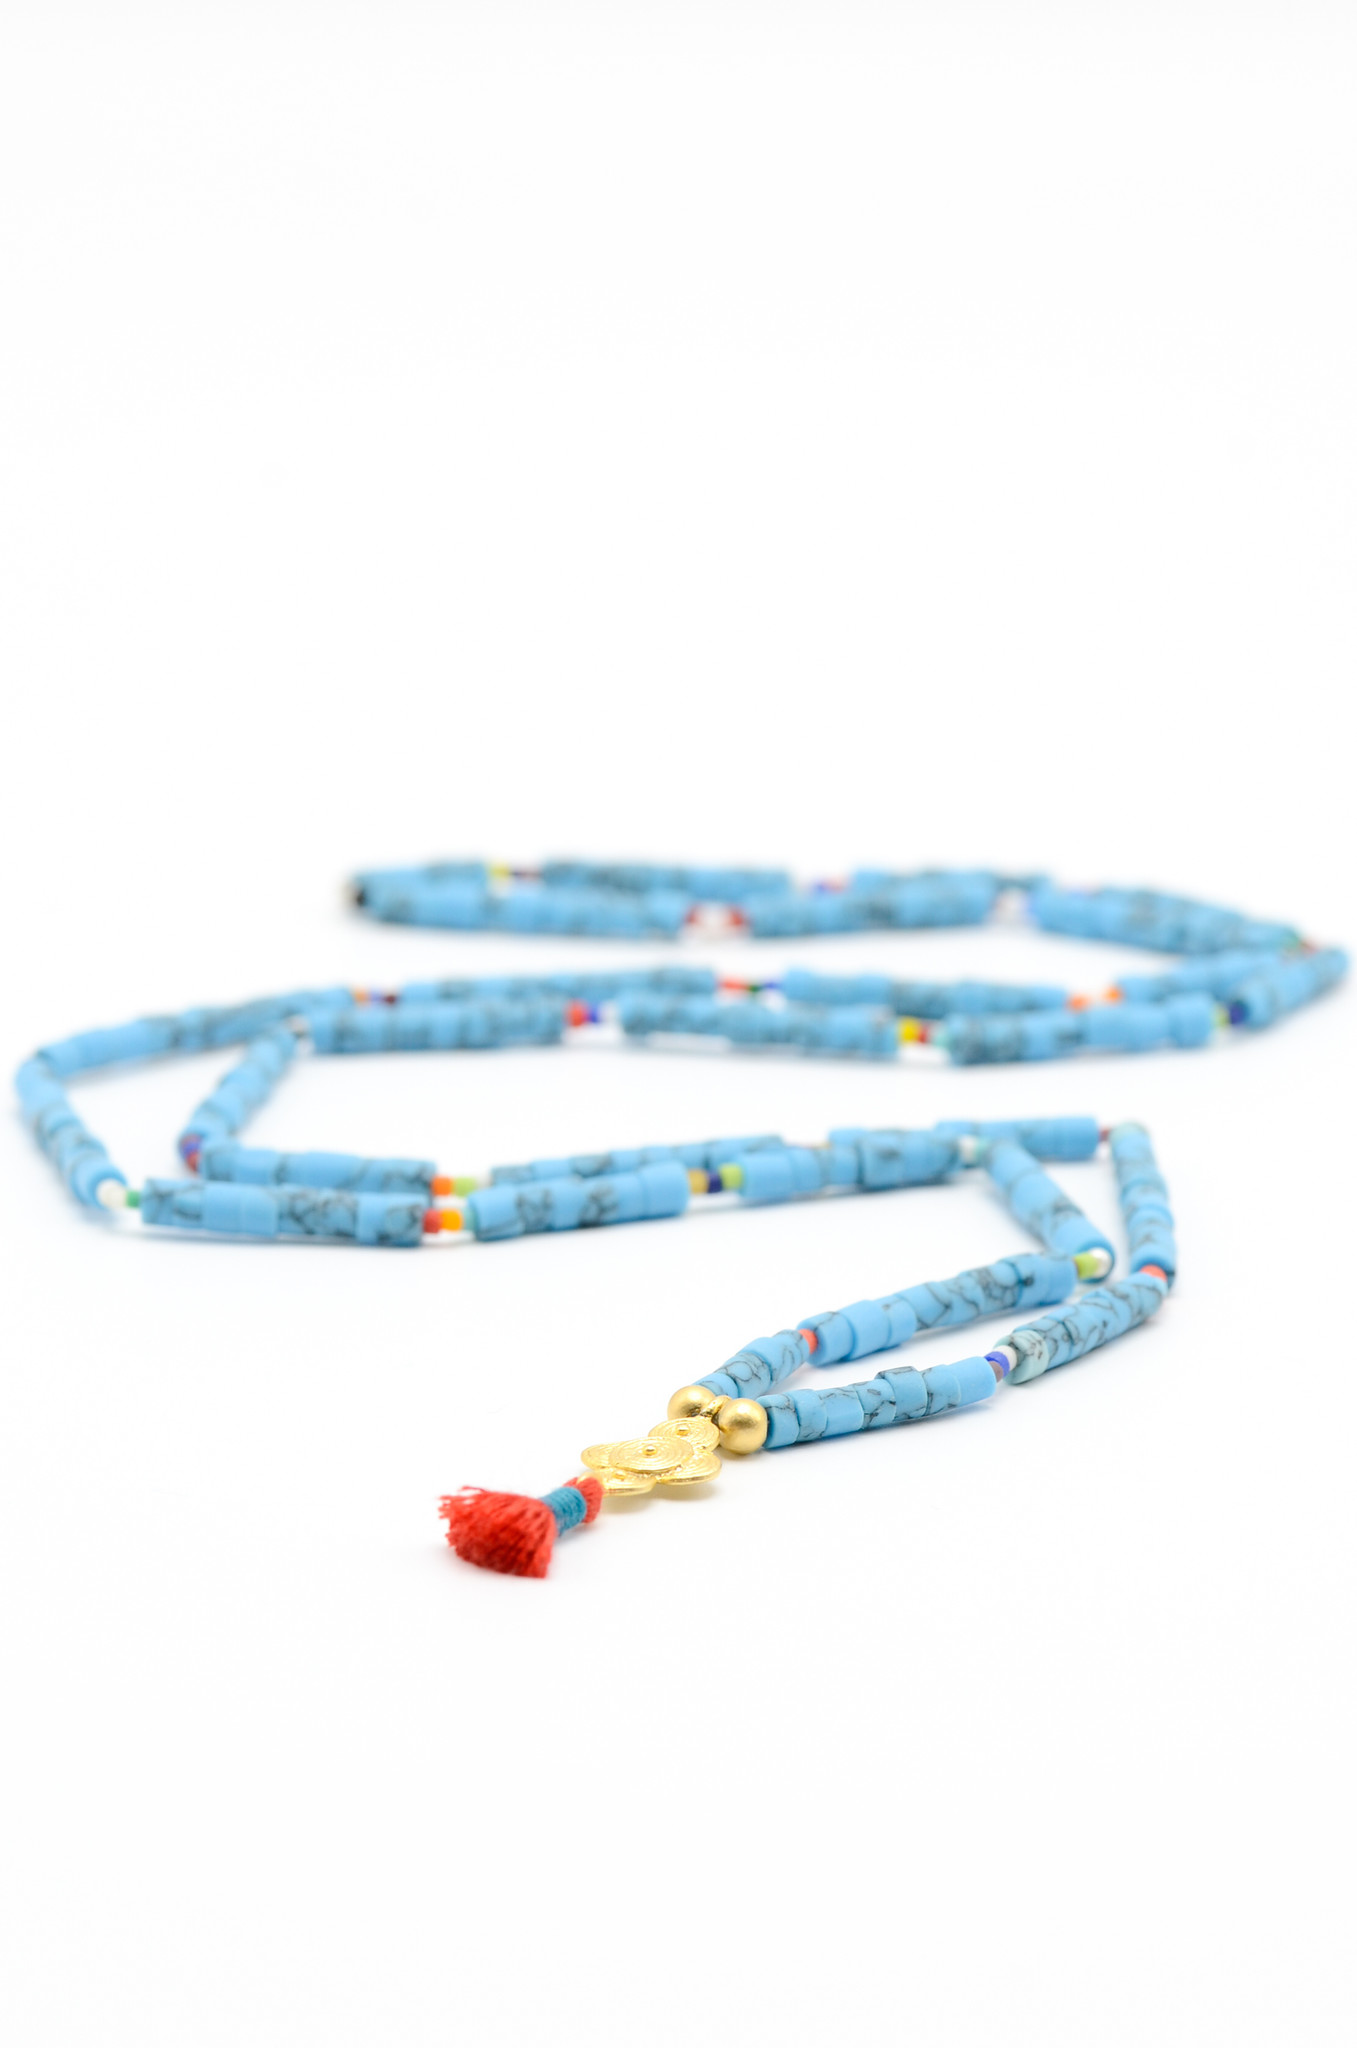 SURFBEAD NECKLACE TURQUOISE-2